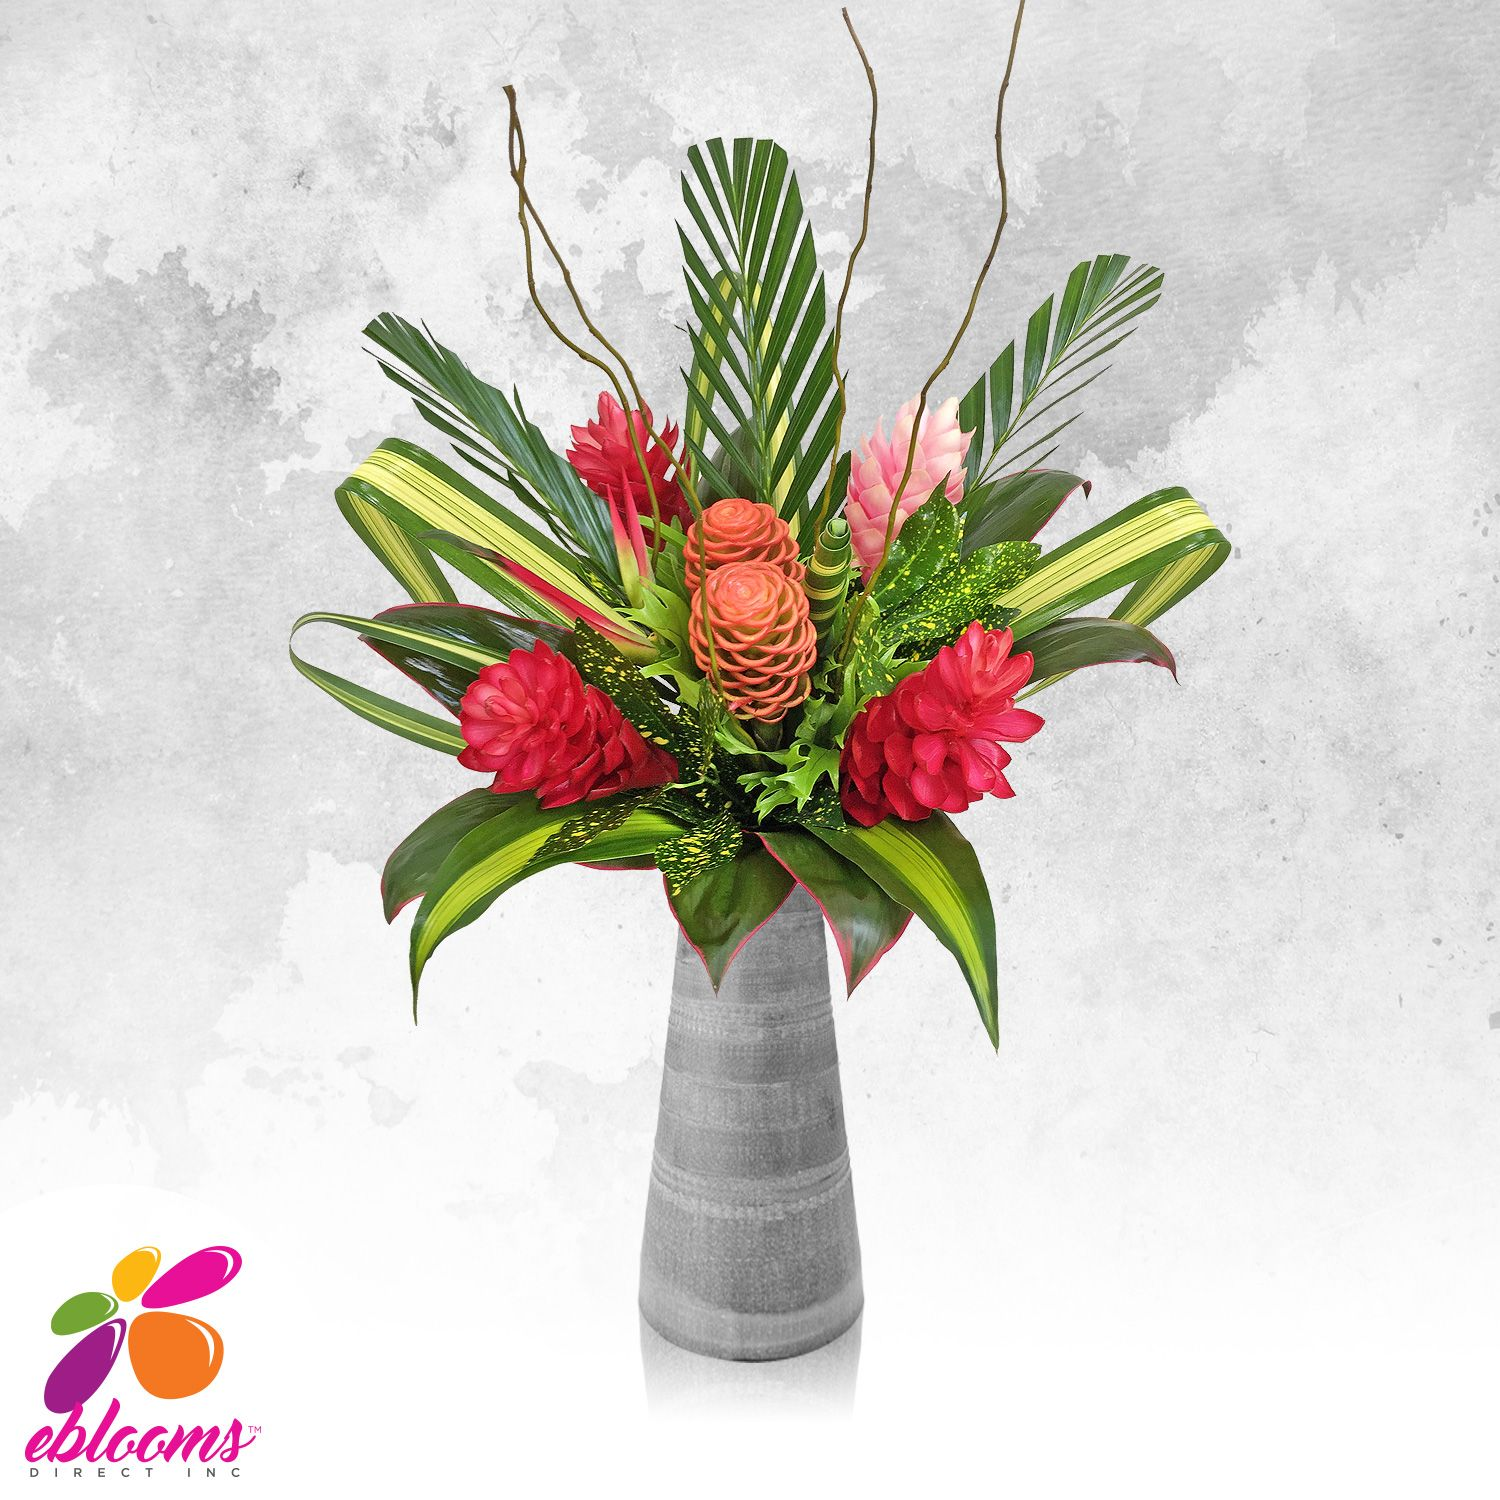 Adventure tropical bouquet pack 1 flower weddings and wedding tropical flowers eblooms direct izmirmasajfo Images